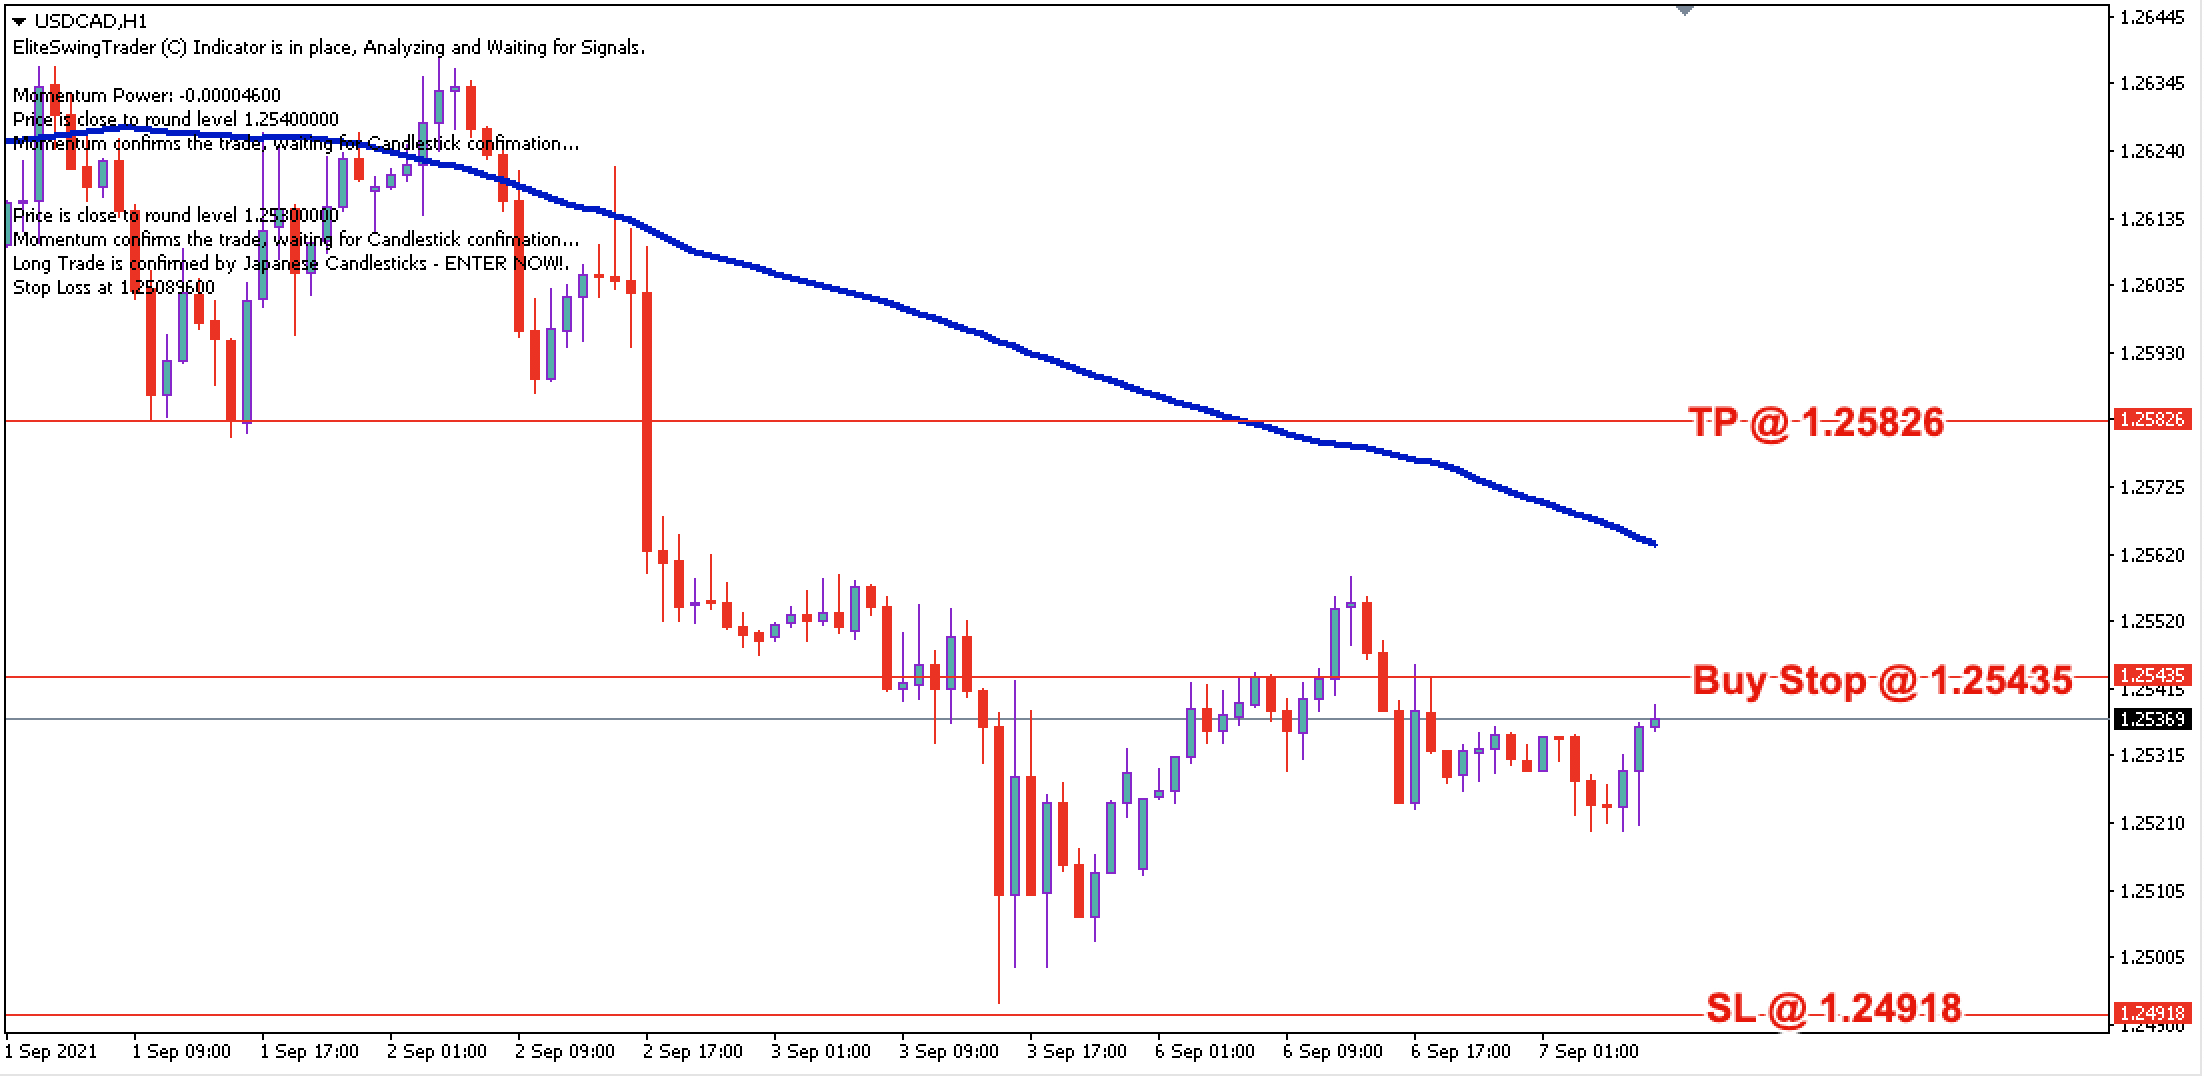 USD/CAD Daily Price Forecast – 7th Sept 2021